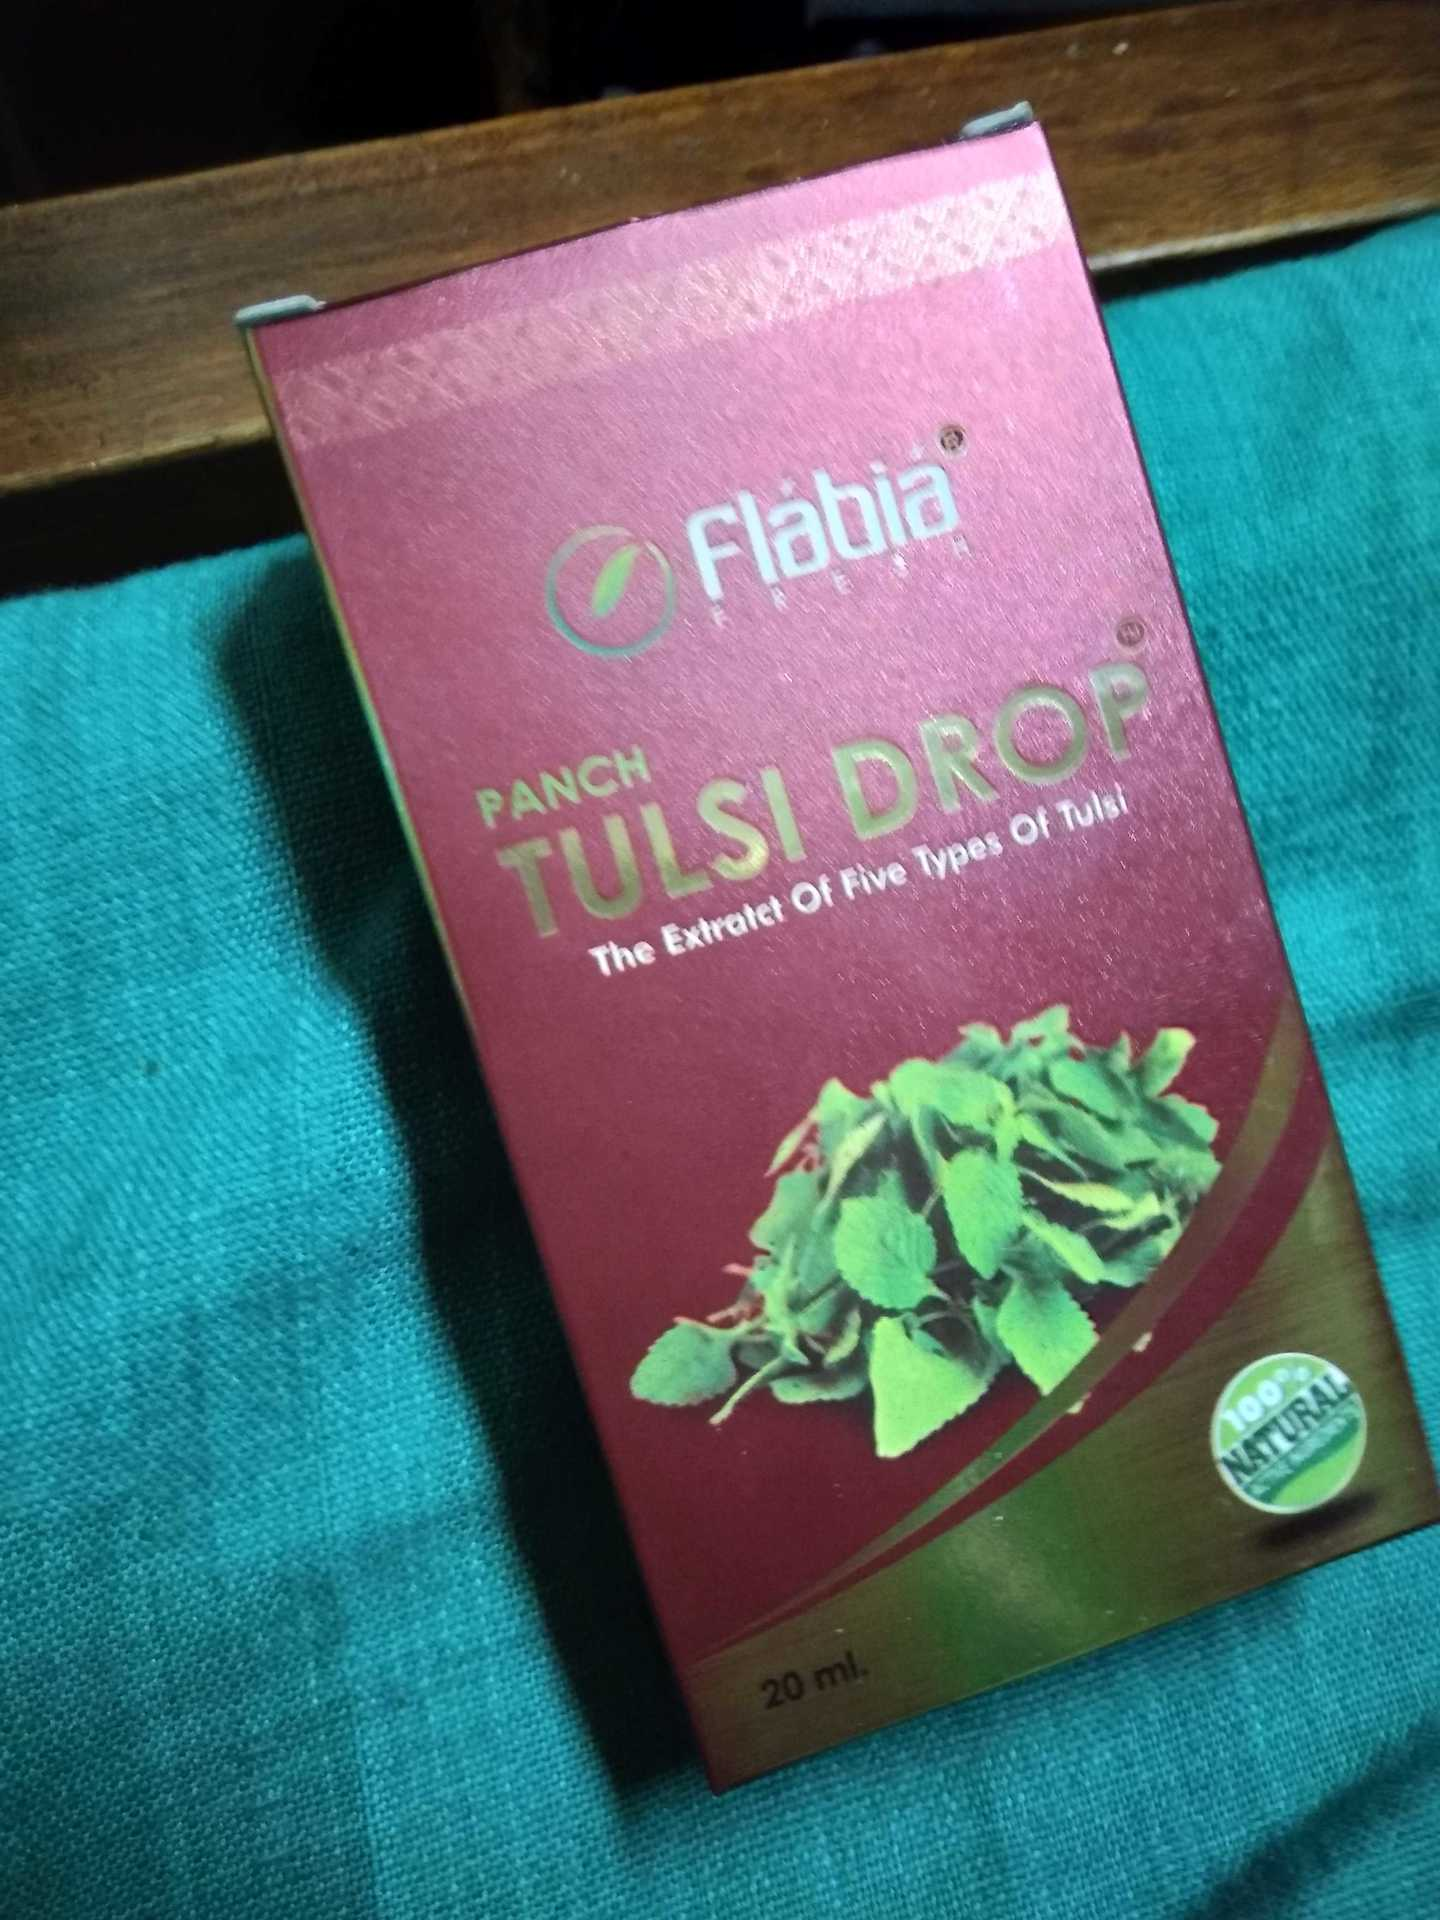 FLABIA FRESH PANCH TULSI DROP- The extract of Five types of Tulsi image